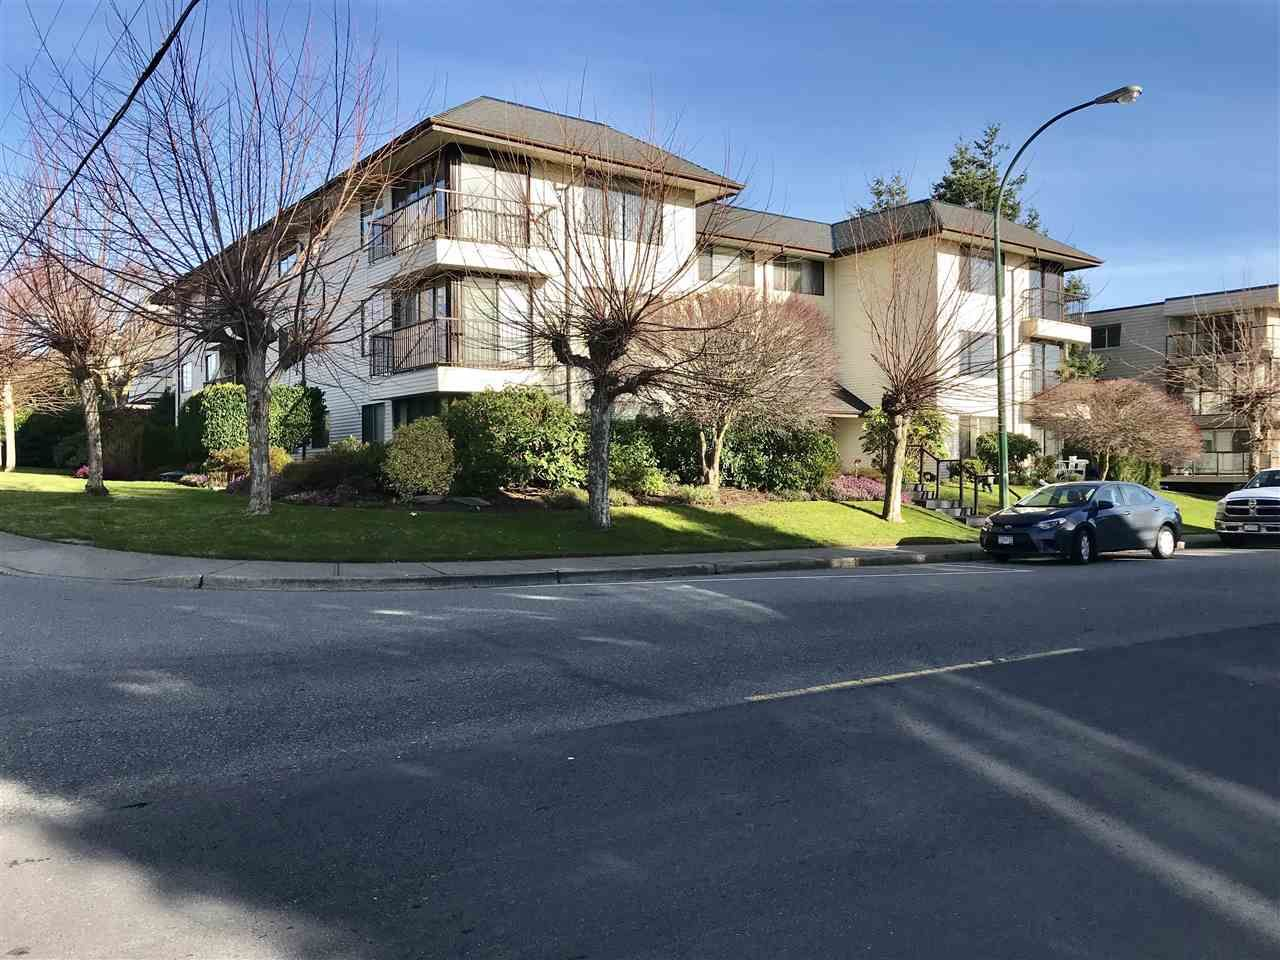 """Main Photo: 103 15317 THRIFT Avenue: White Rock Condo for sale in """"The Nottingham"""" (South Surrey White Rock)  : MLS®# R2336892"""